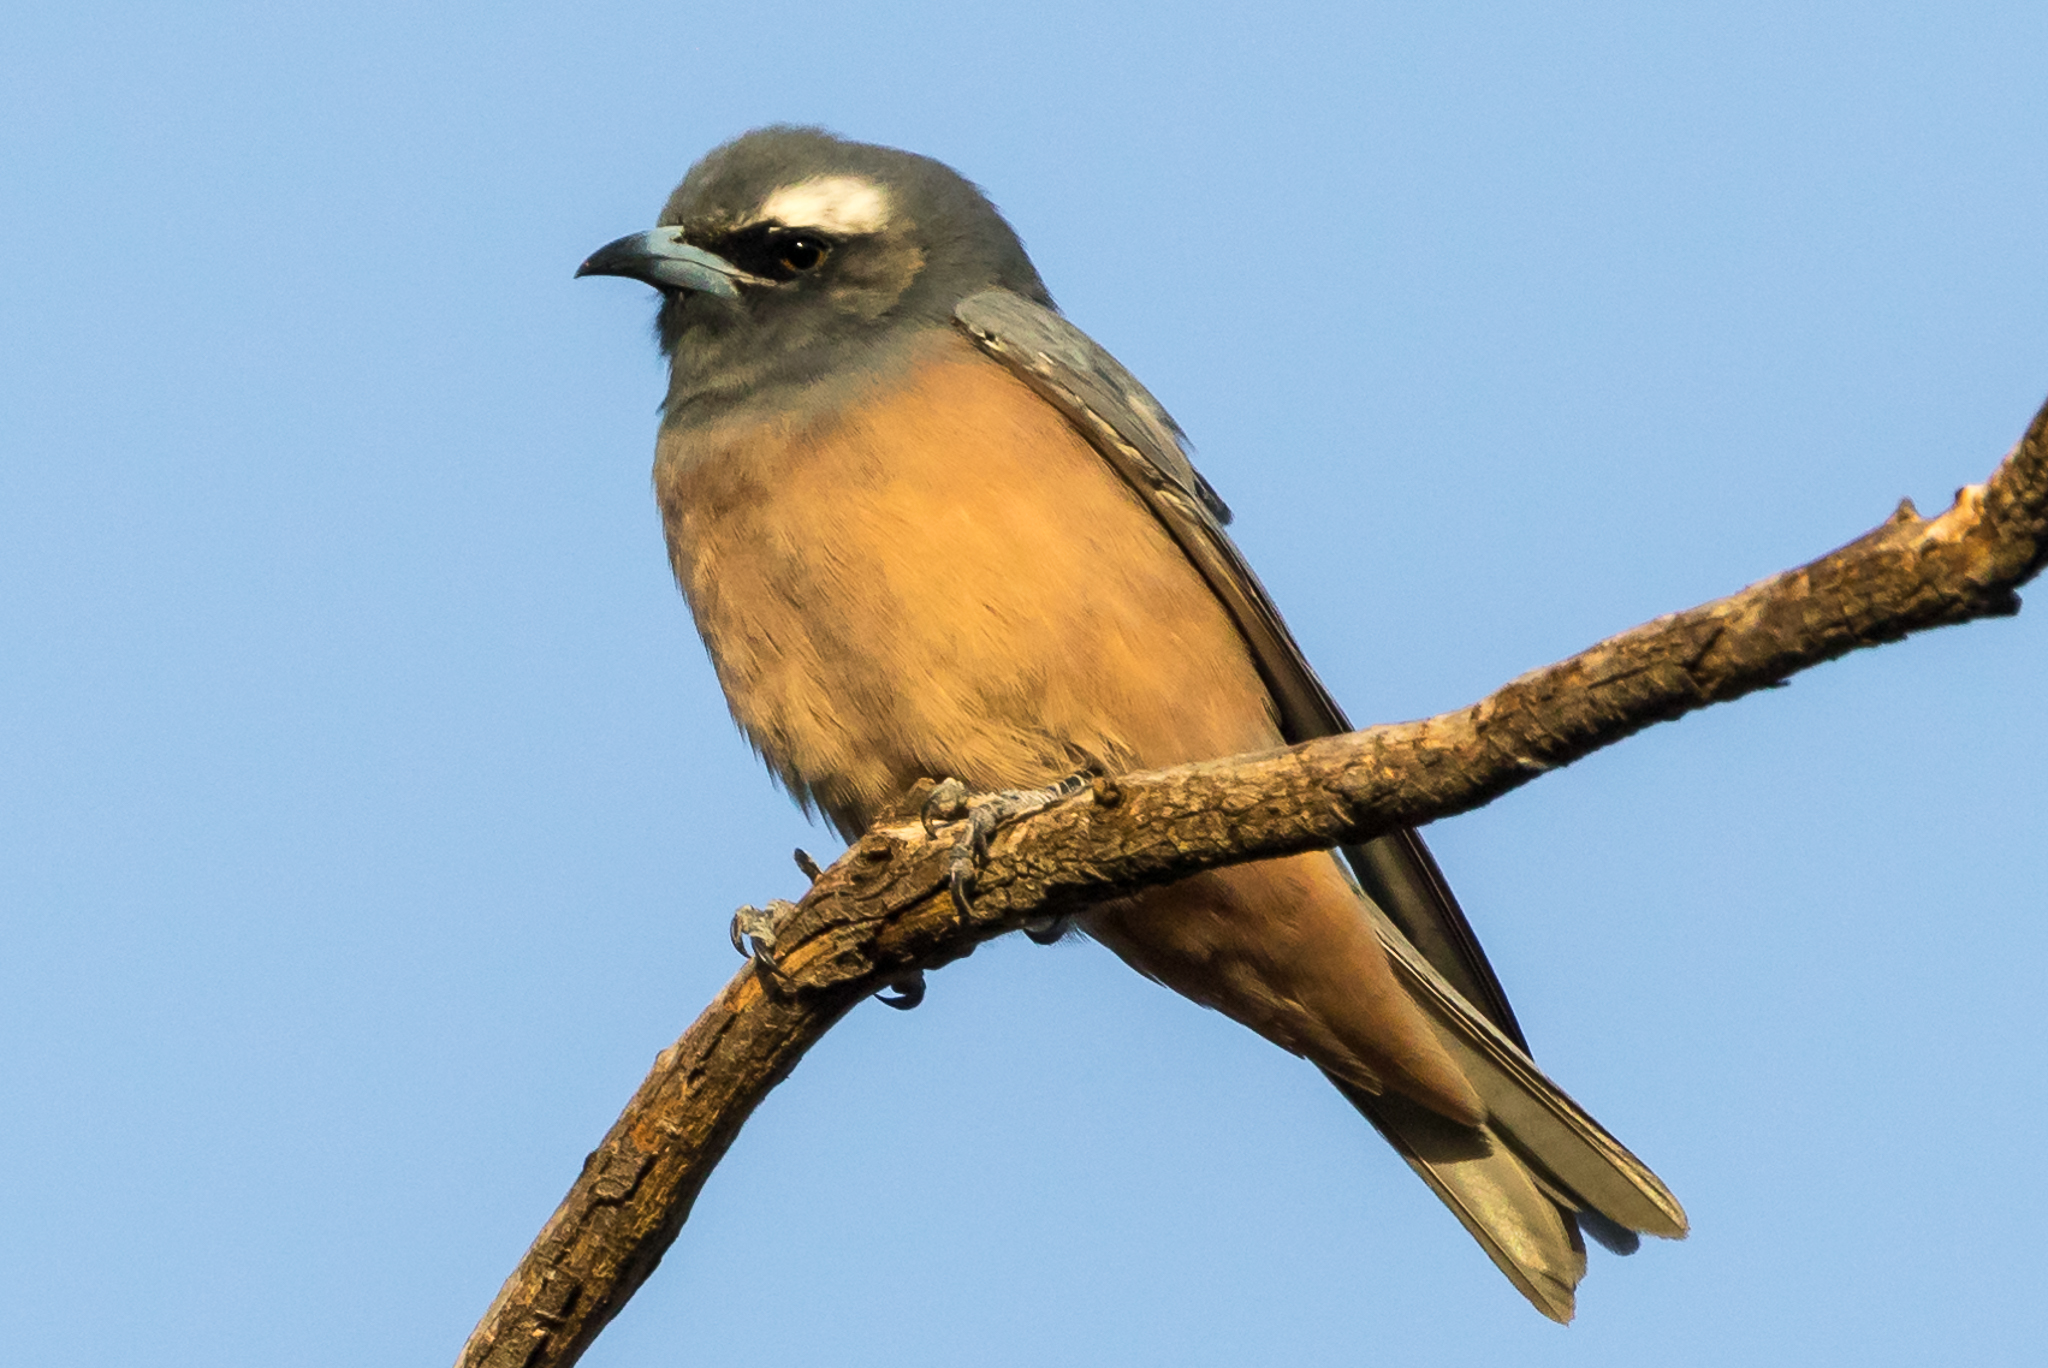 The White-browed Woodswallow is a summer visitor to inland south-eastern Australia, returning north for the winter. It feeds on both insects and nectar and is seen in a wide range of habitats, sometimes in very large flocks.